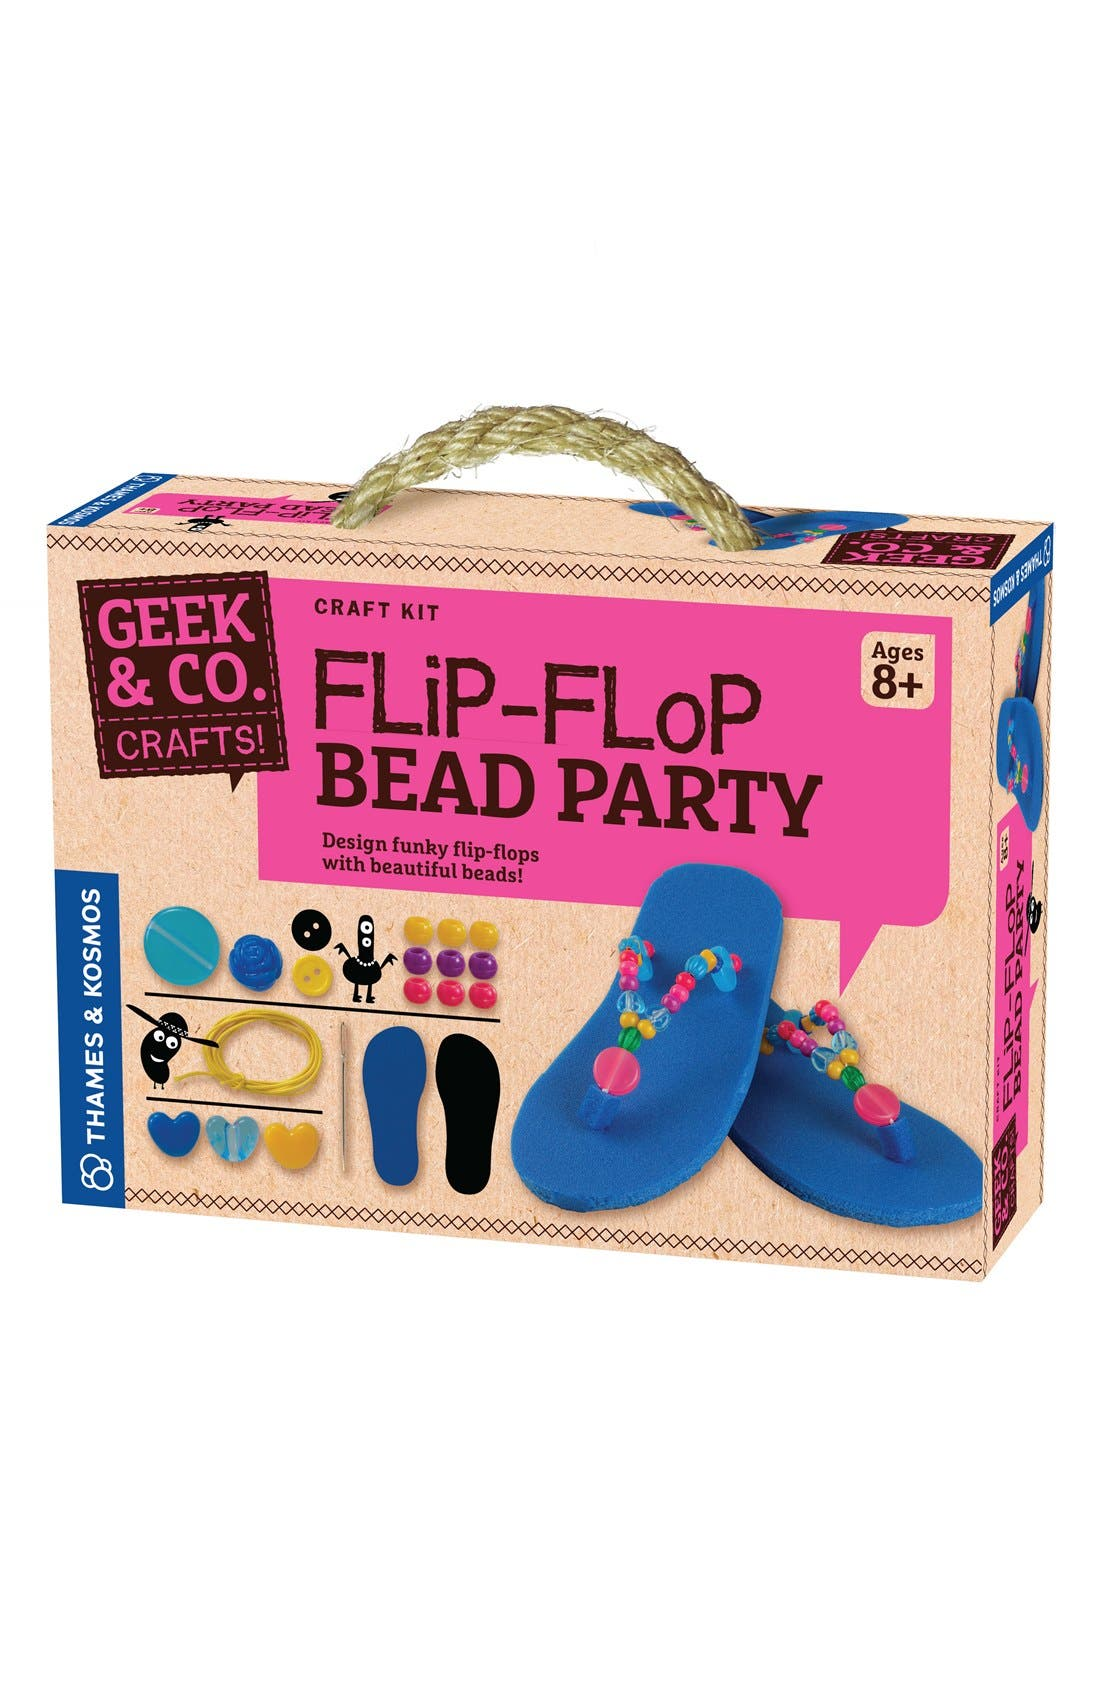 'Flip-Flop Bead Party' Kit,                             Main thumbnail 1, color,                             None